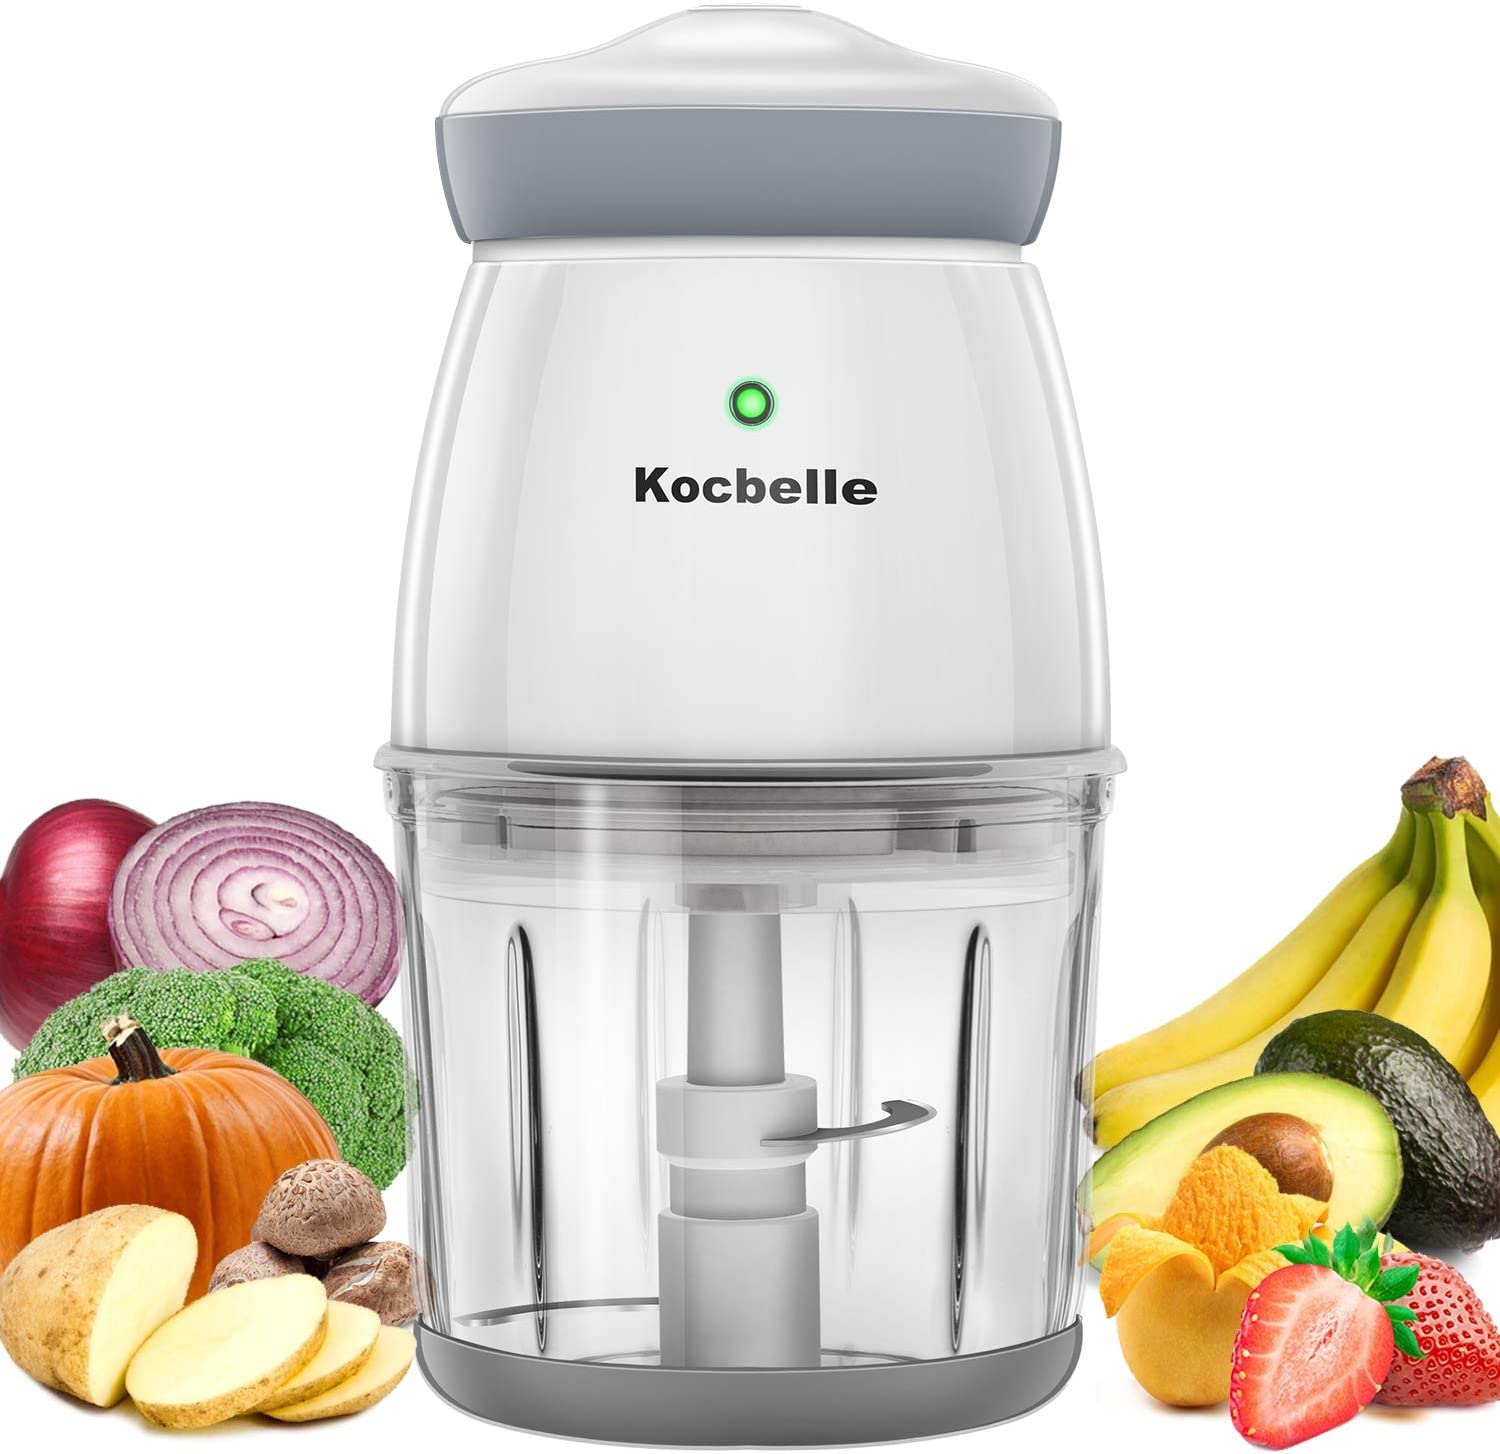 Wireless Mini Food Processor,Vegetable Chopper Glass Bowl 2.5 Cup 200 Watt Fast Speed Meat Grinder with Sharp Blade and plastic stirring stick for Meat,Vegetables, Fruits